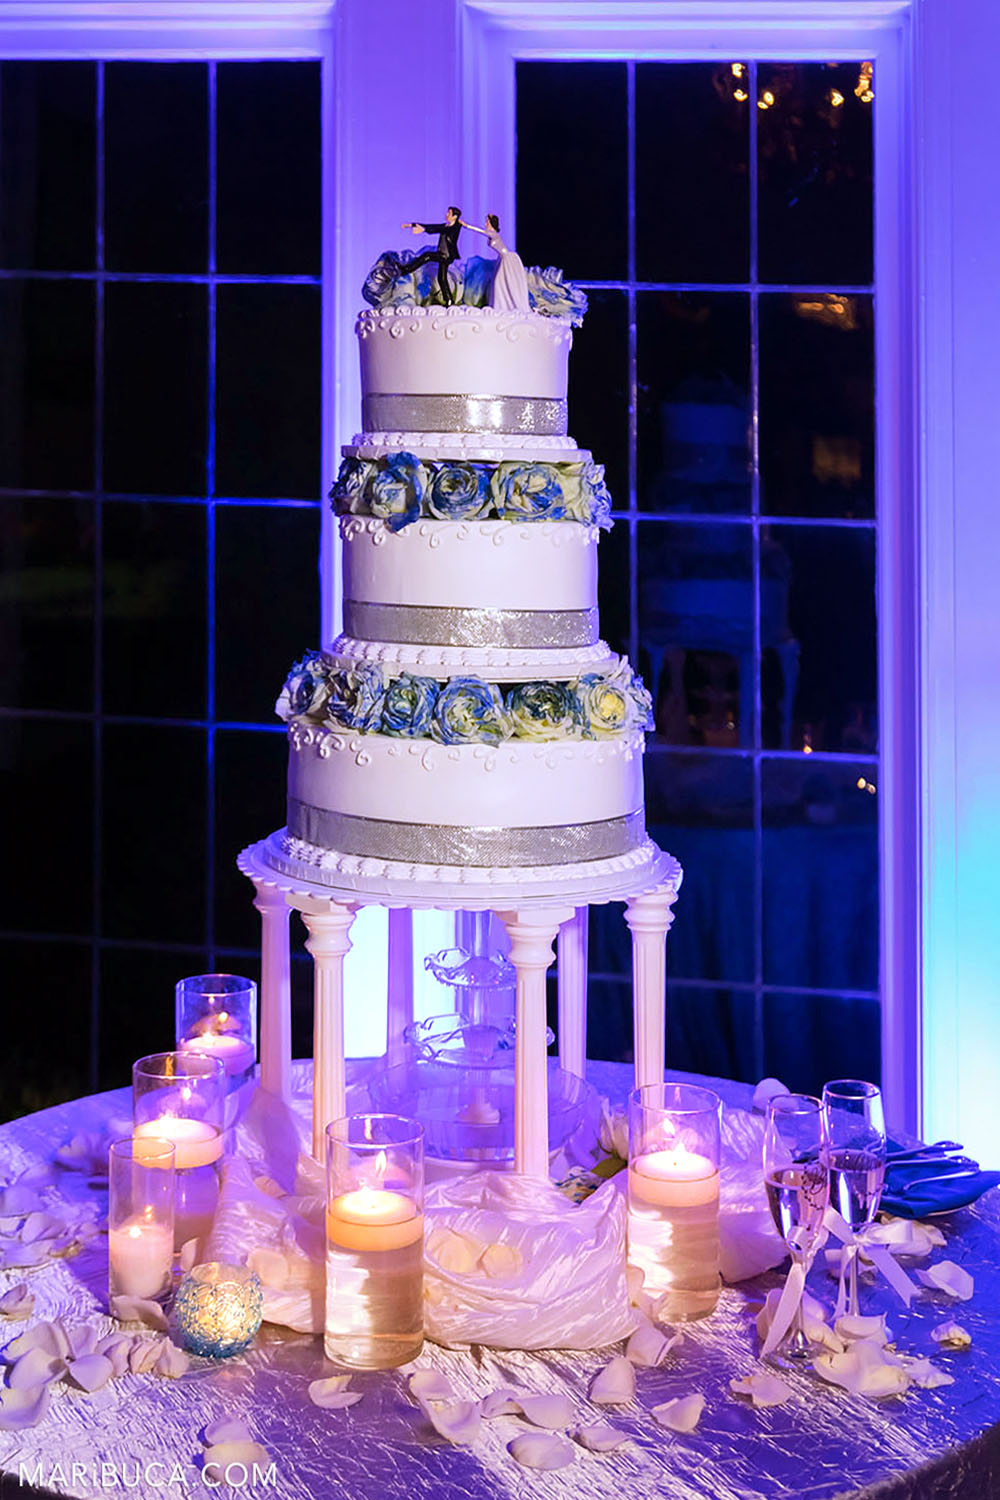 A three-story white cake with blue roses stands surrounded by lit candles on the water and purple light.